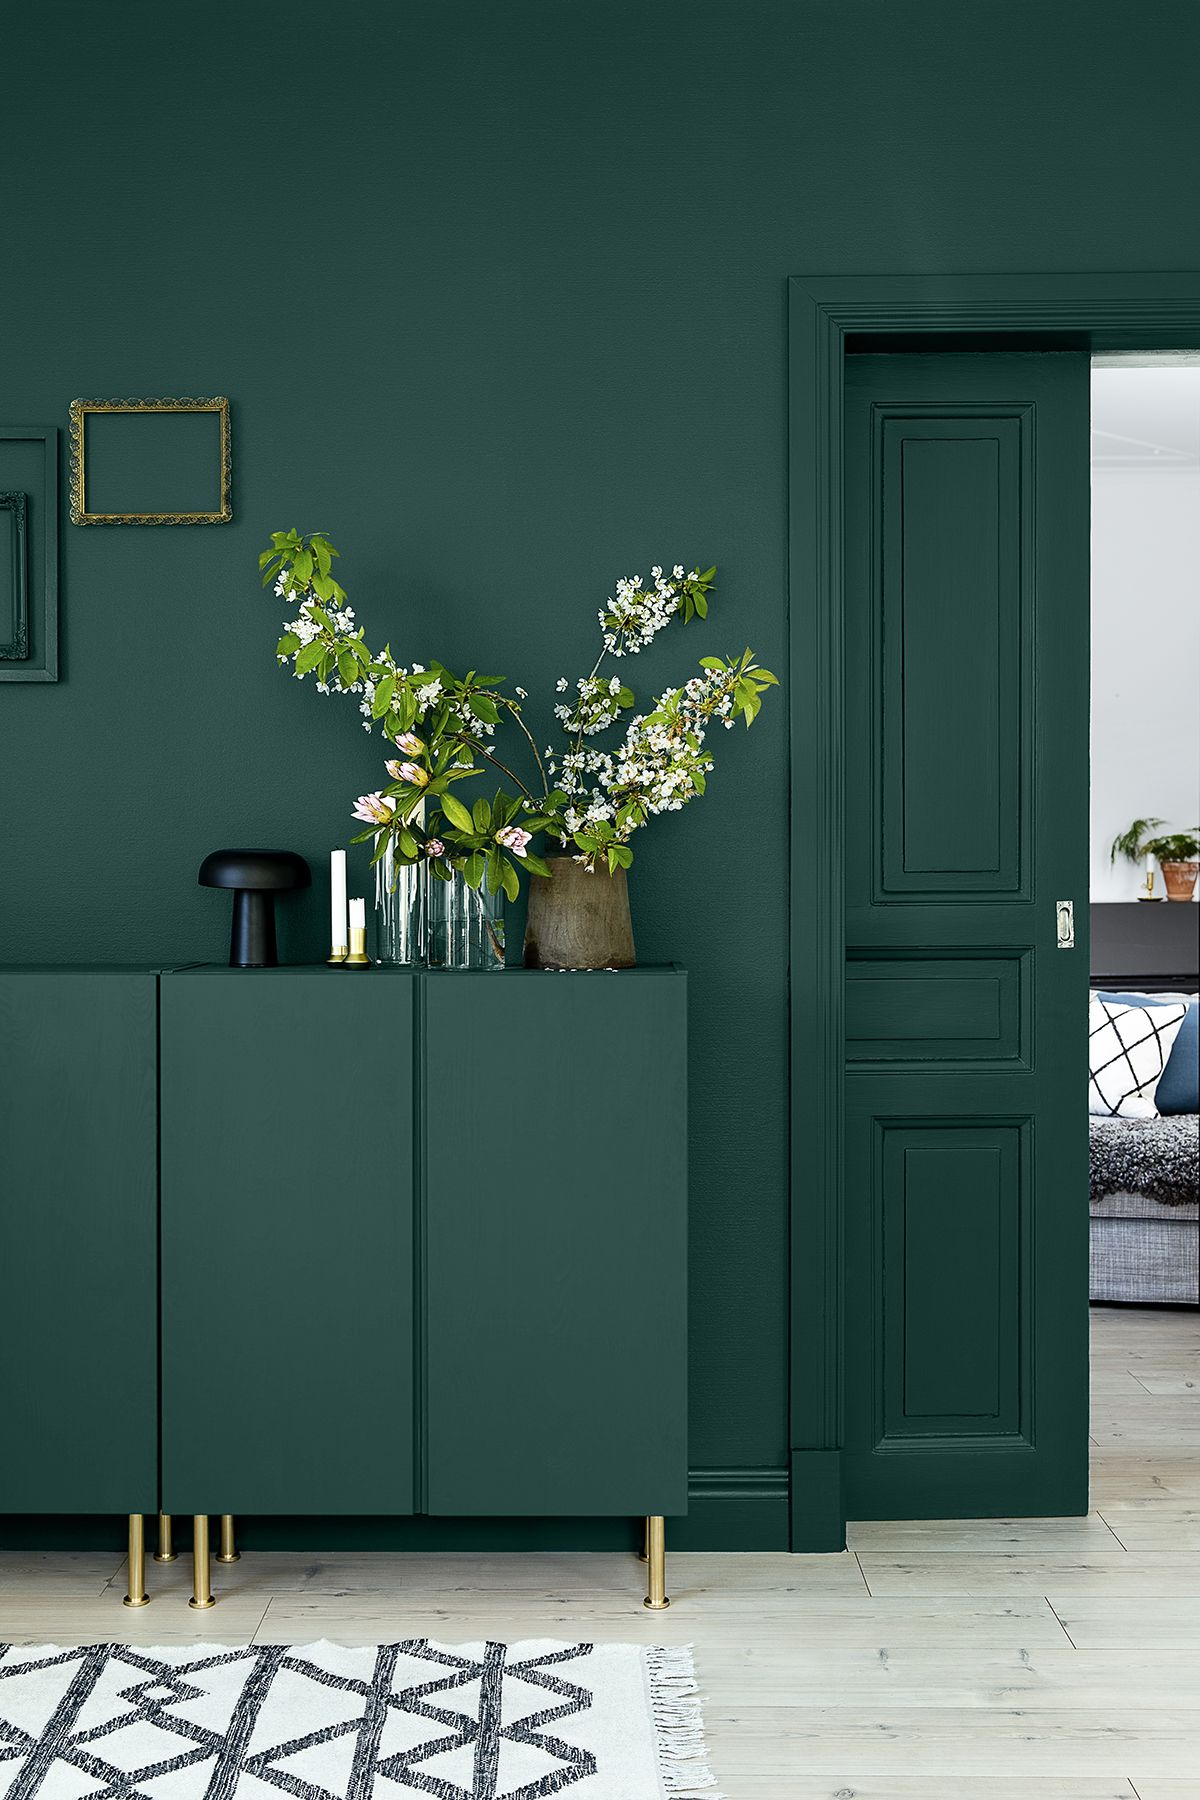 Merveilleux This Is An Intense Hit Of Green For A Bold Interior Design Scheme   Itu0027s  Great To See How Well Painting The Woodwork And Furniture All In The Same  Colour ...